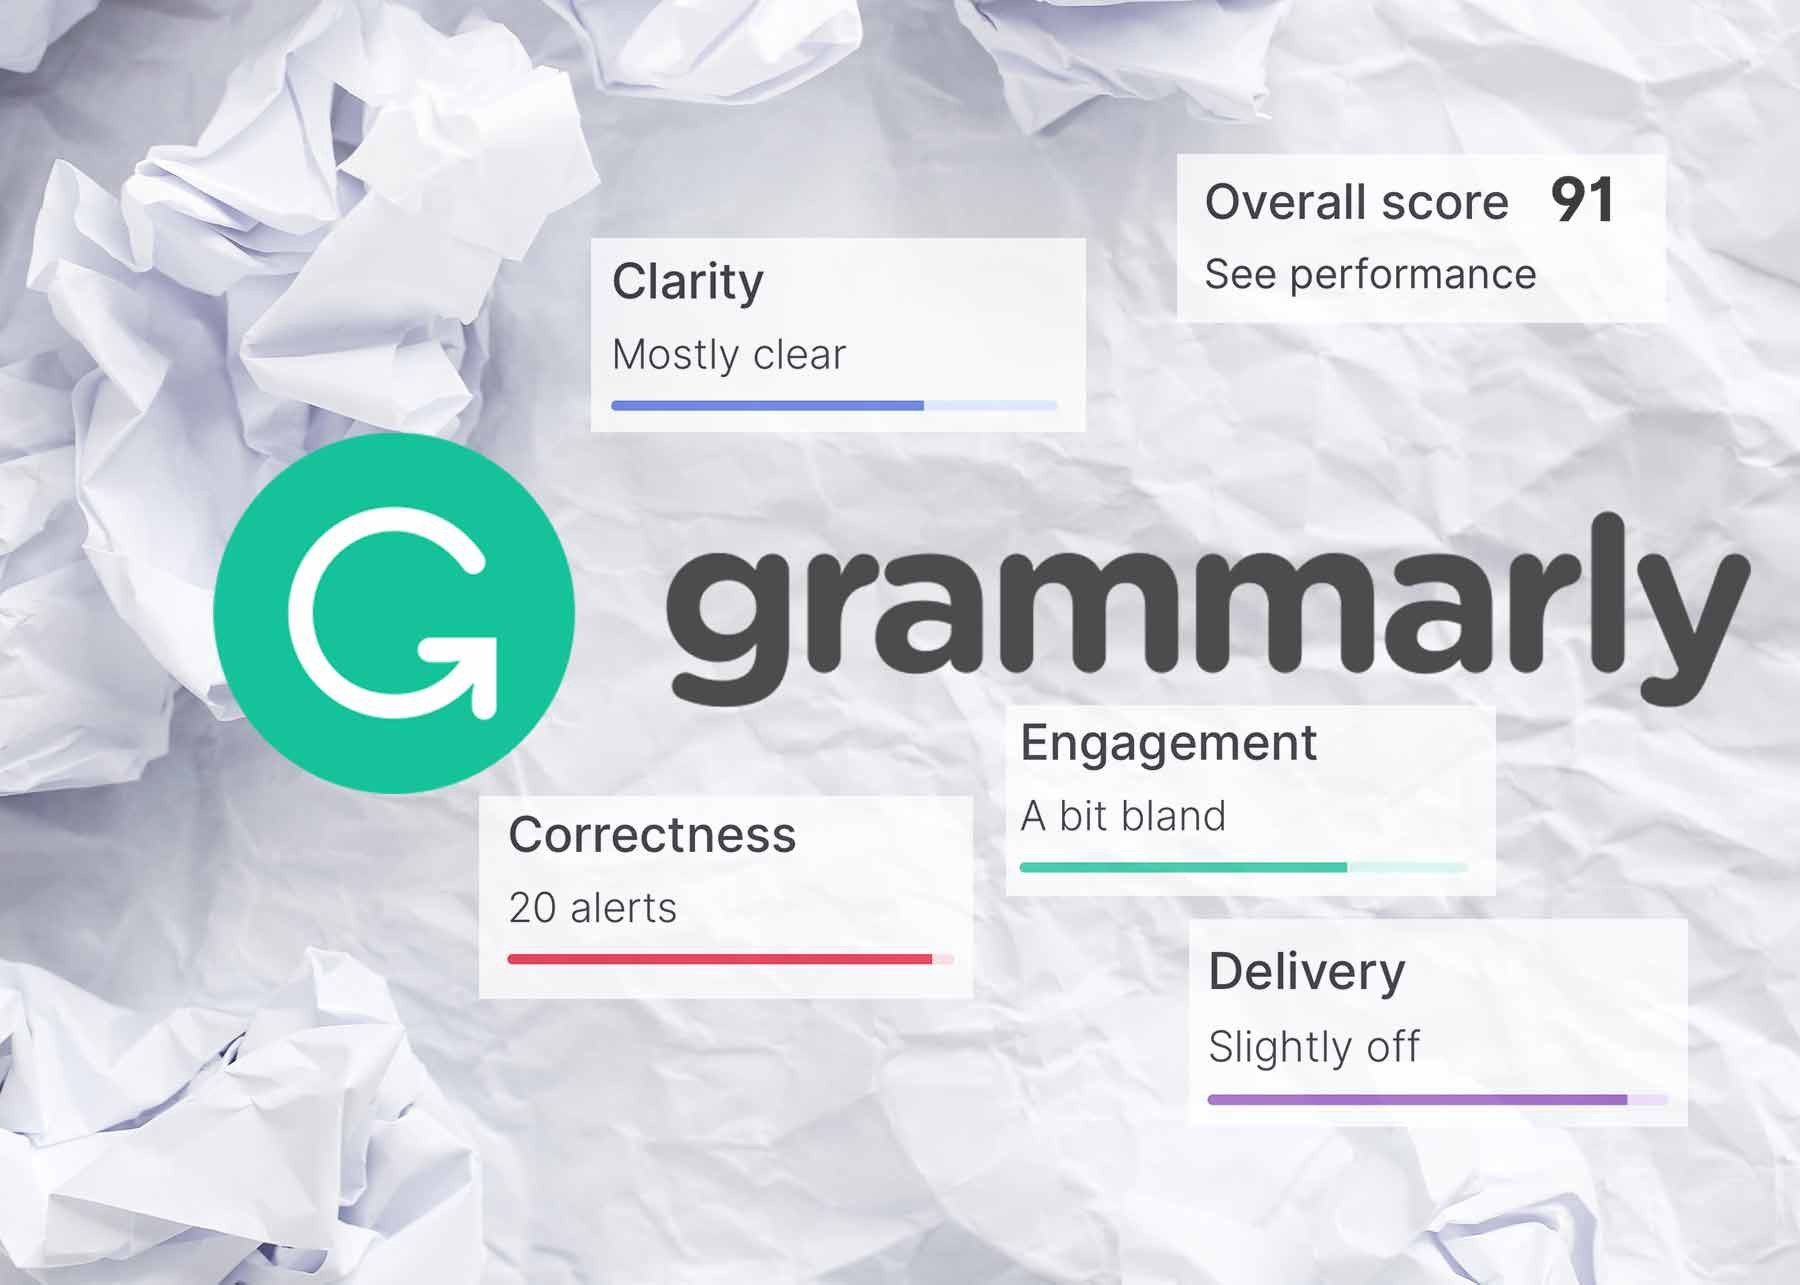 The Grammarly logo and poor scoring report details sit atop crumpled pieces of writing paper.